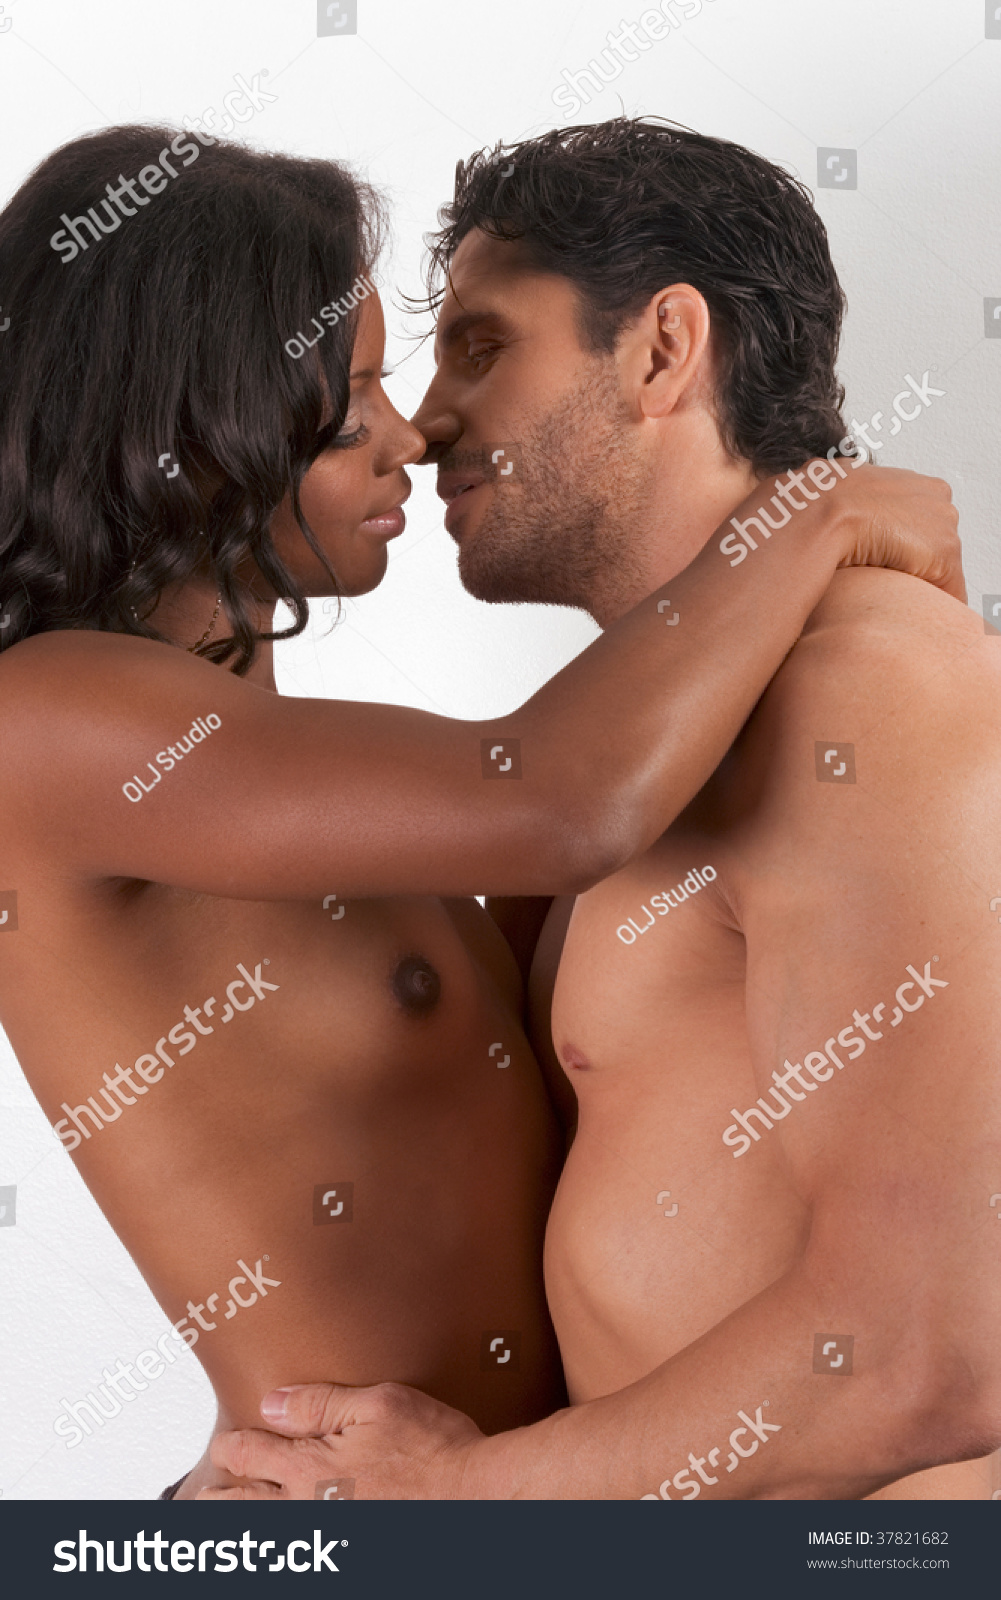 Sexy porn couple image african american casually